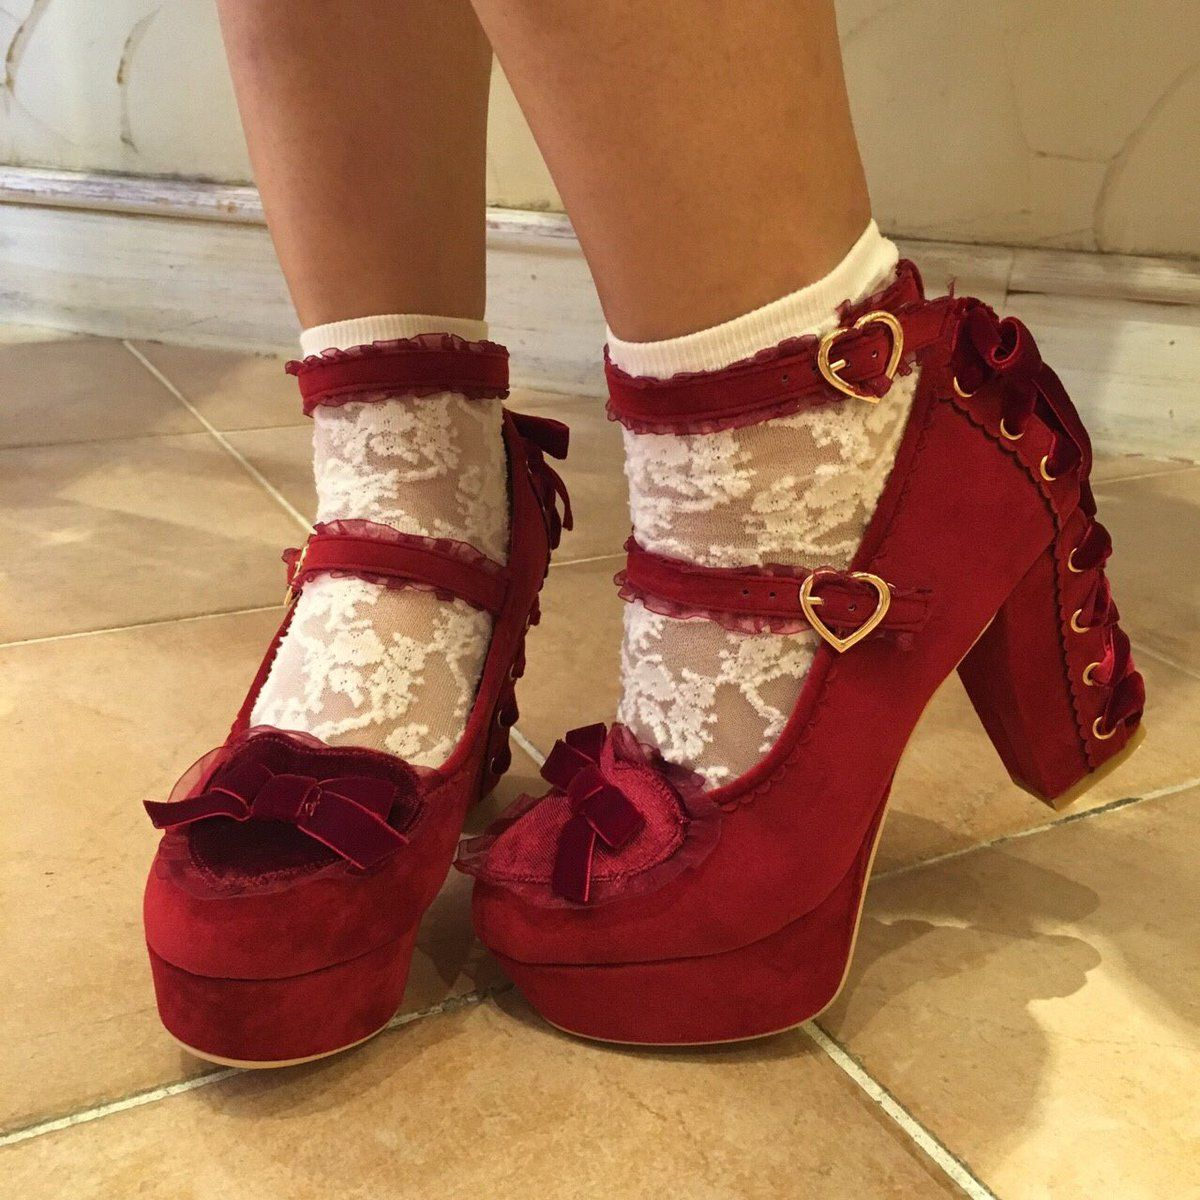 5d103612f04 I live these shoes!!! | Shoes! !!! Need i say more? | Lolita shoes ...